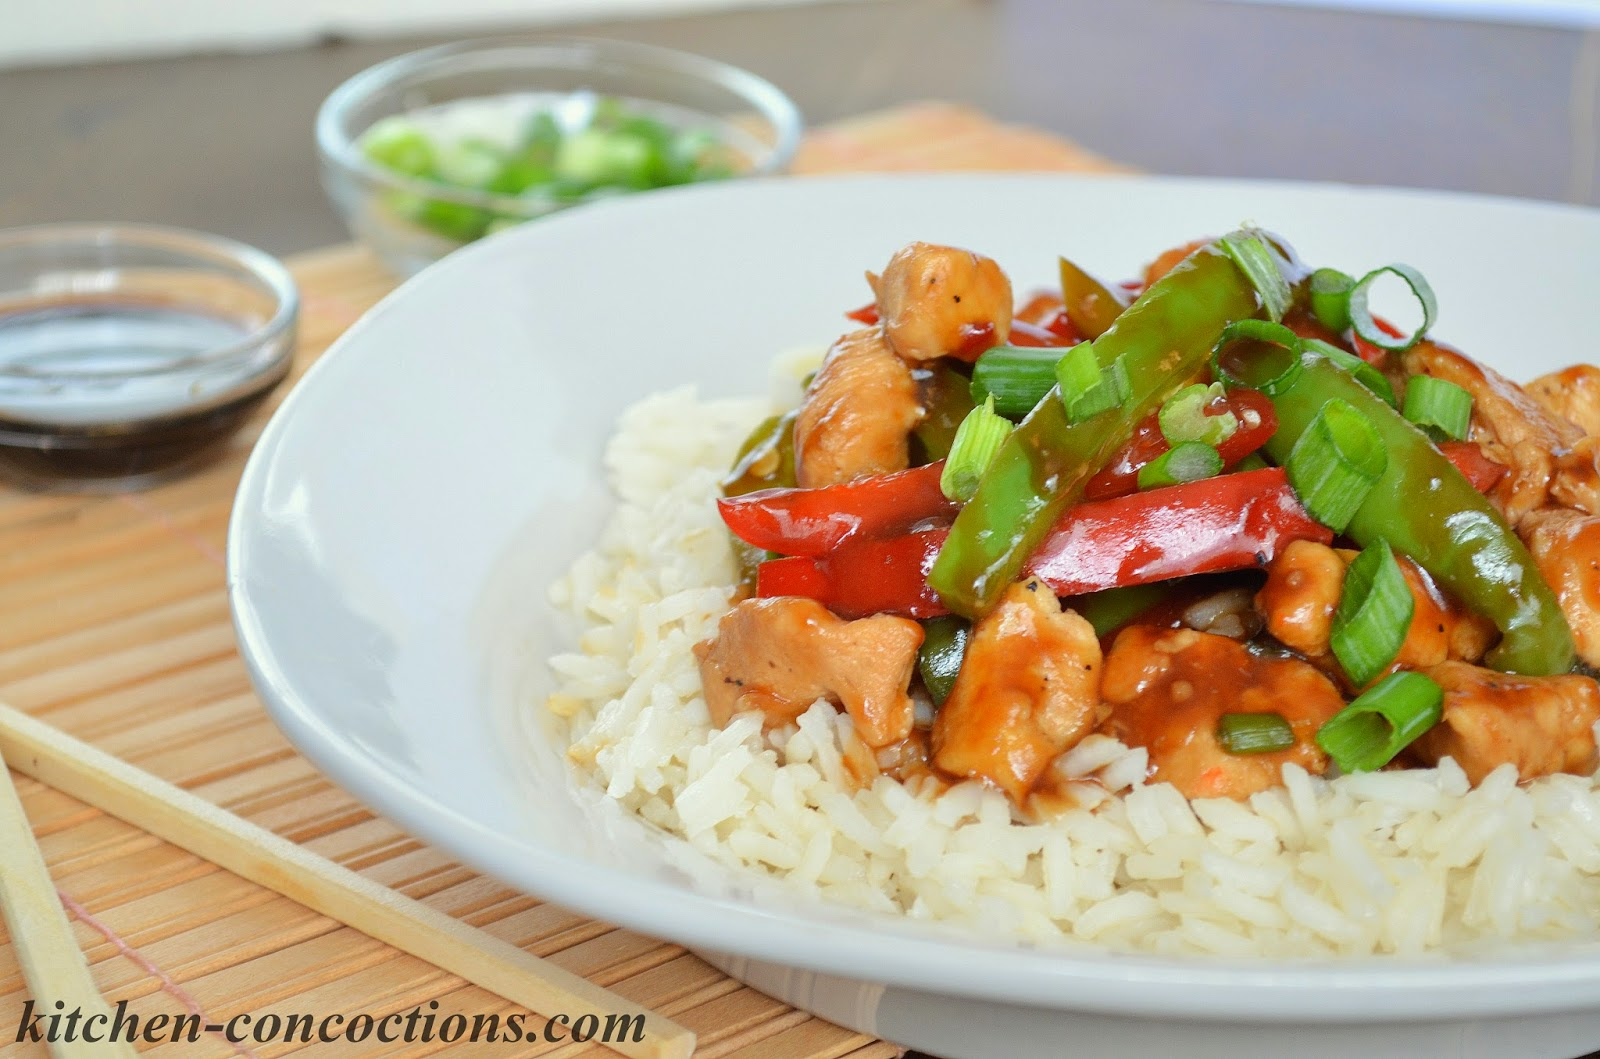 Kitchen Concoctions: Chicken and Bell Pepper Stir-Fry